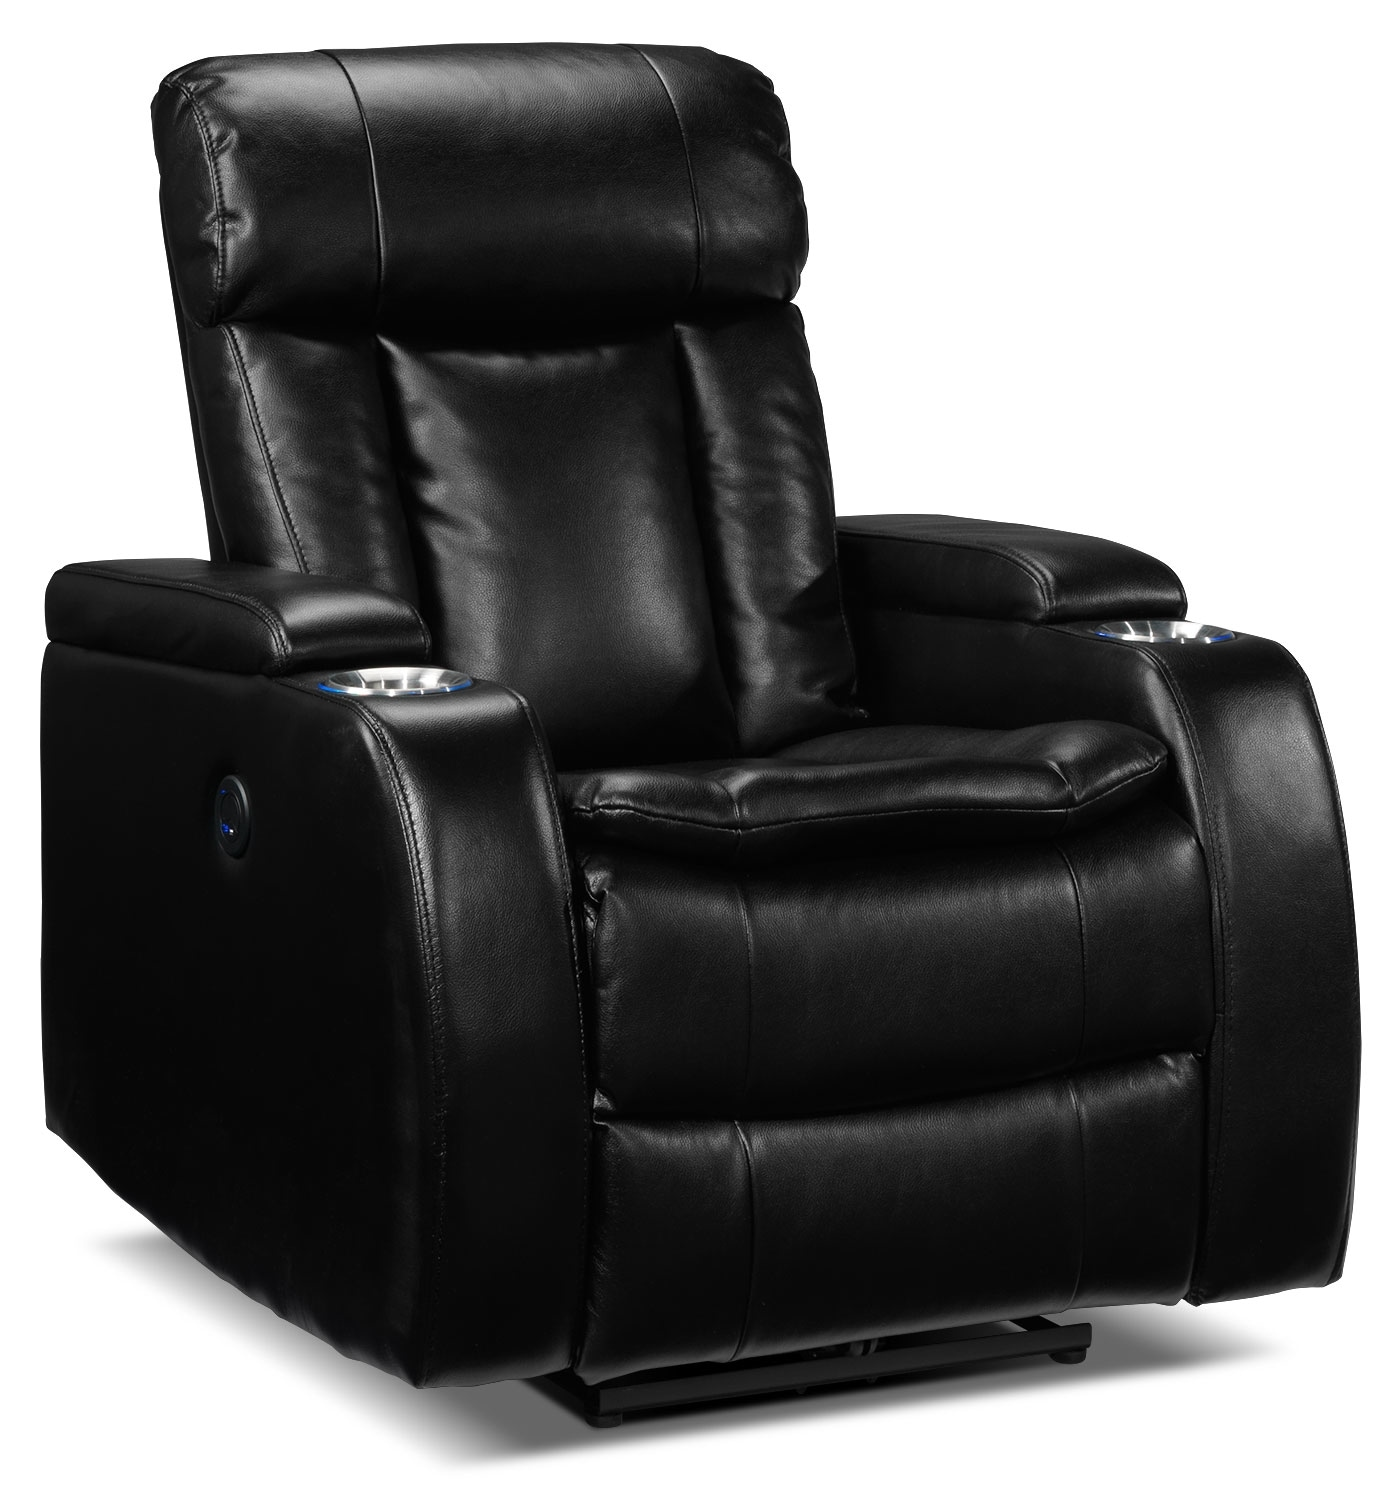 Living Room Furniture - Executive Power Recliner - Black